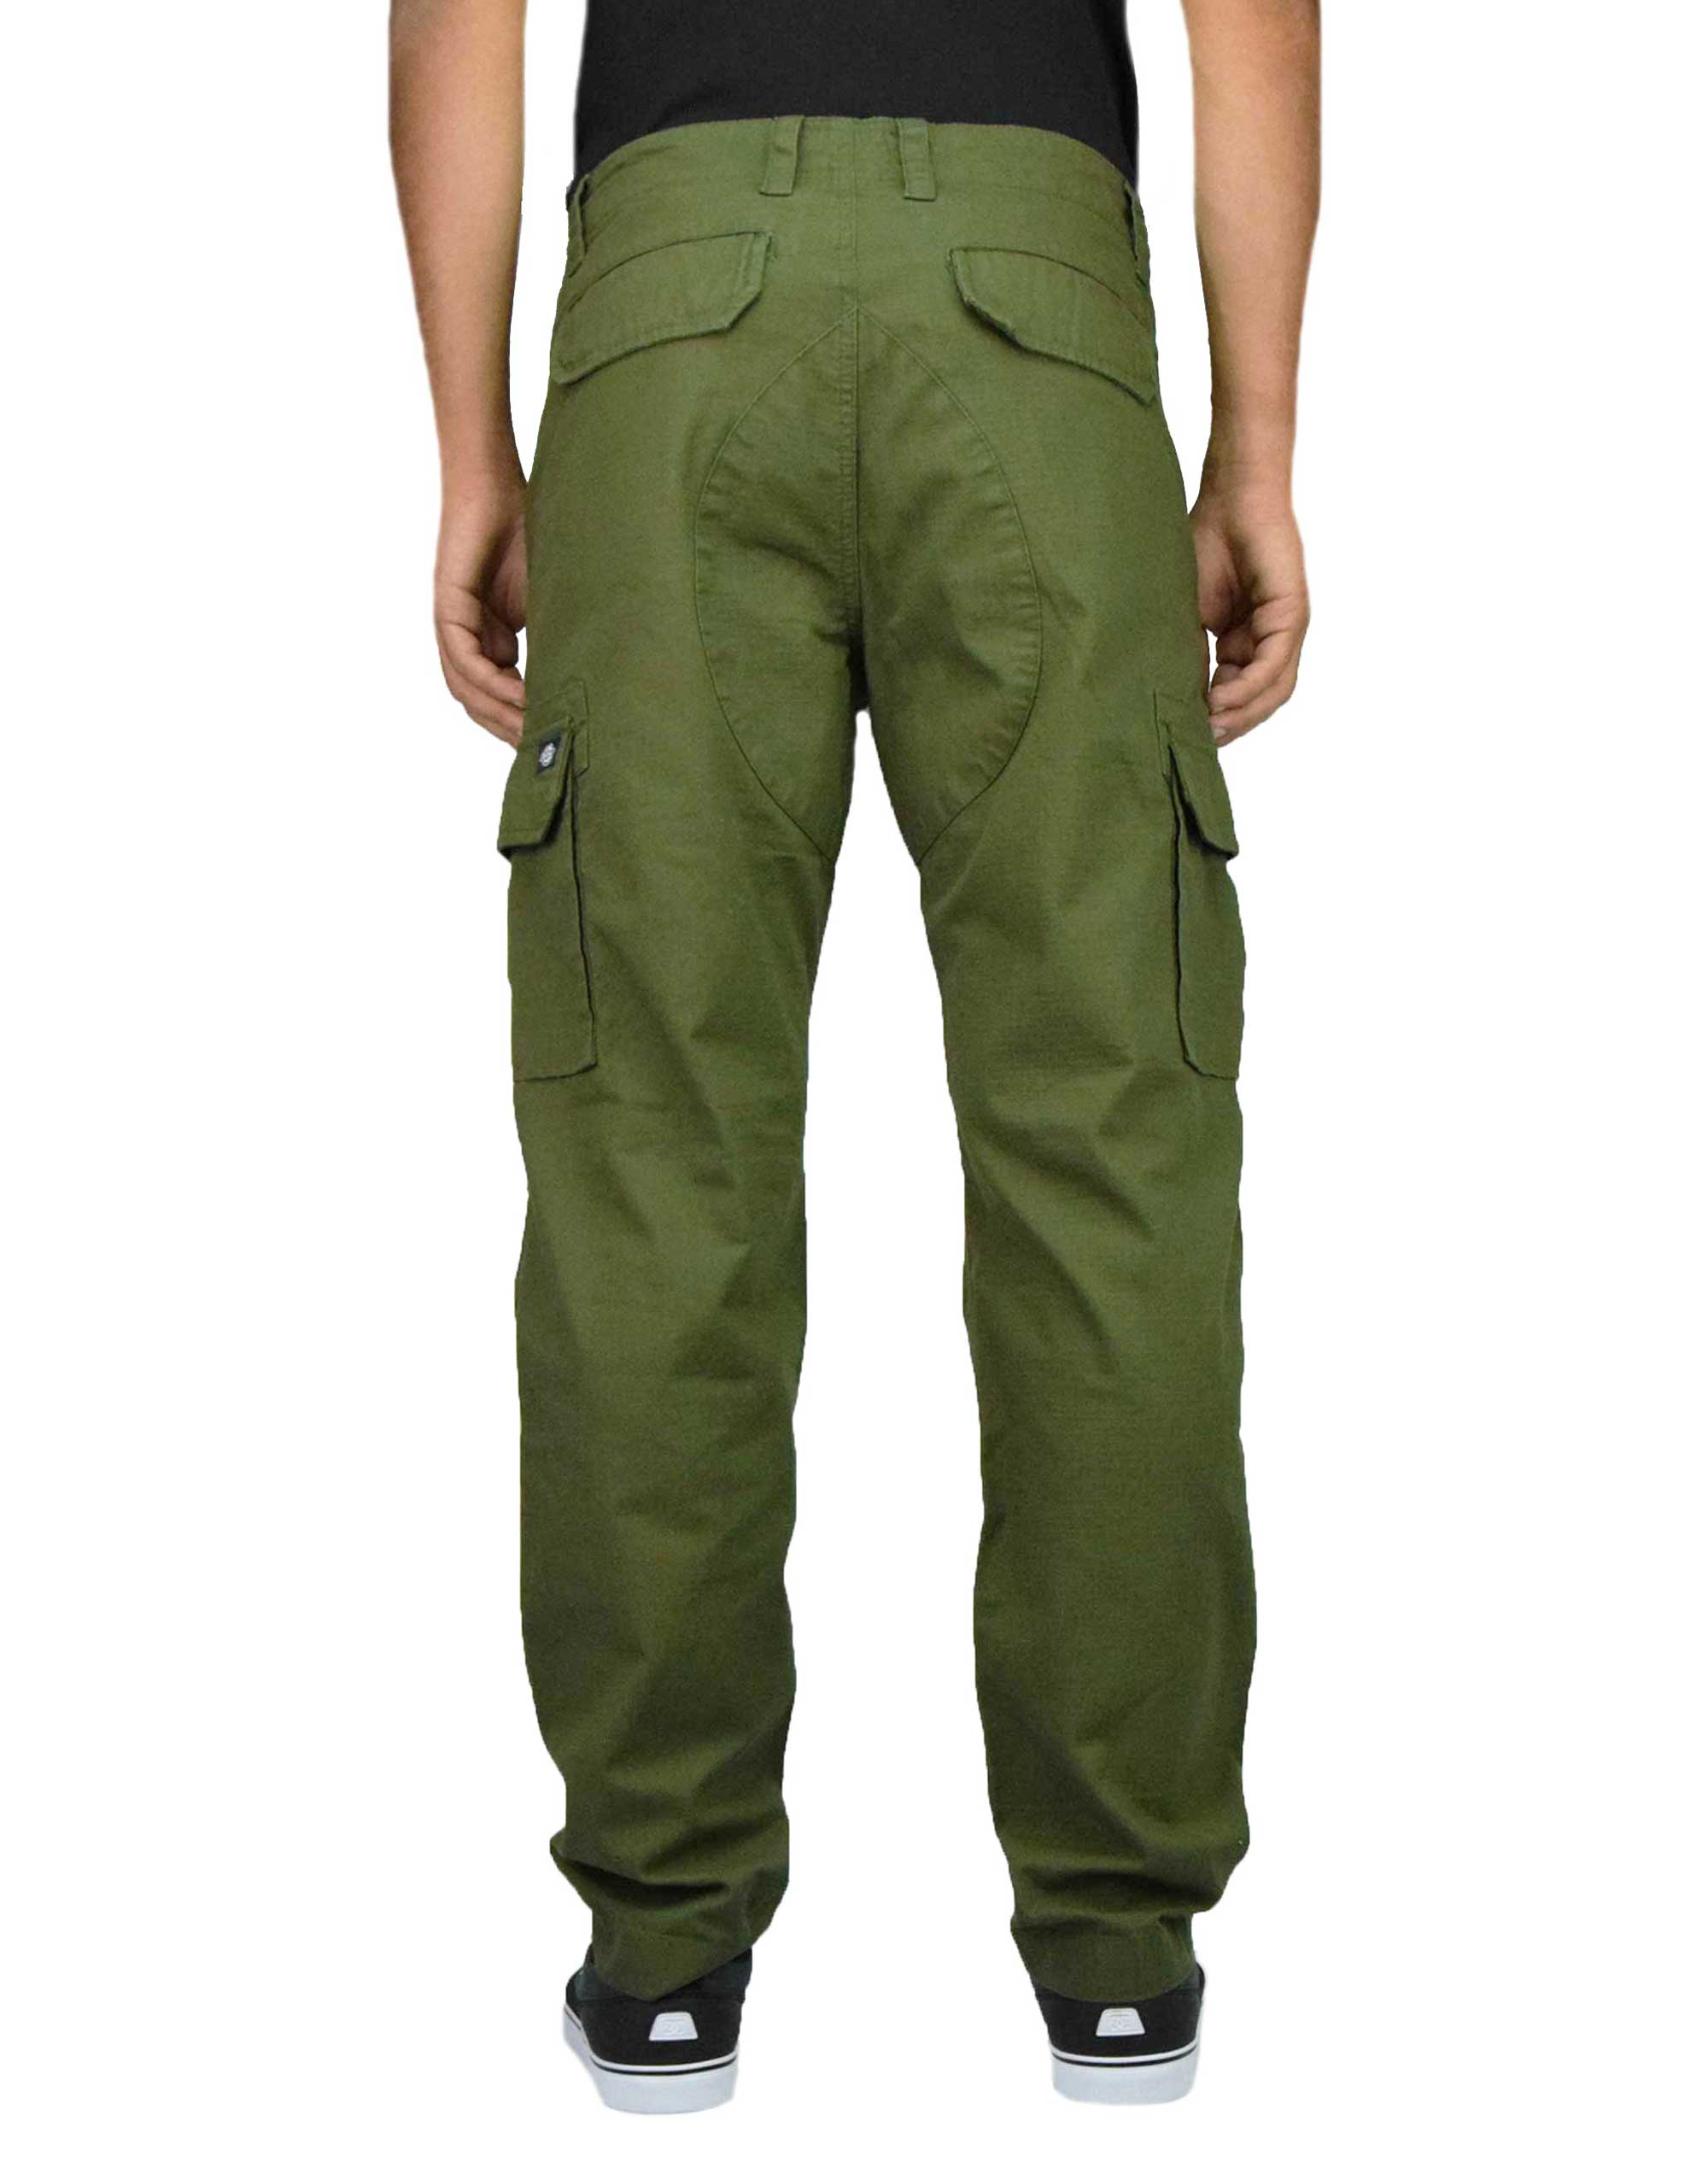 Dickies Edwardsport Slim Fit Combat Pant (DK121121DKO1) Dark Olive